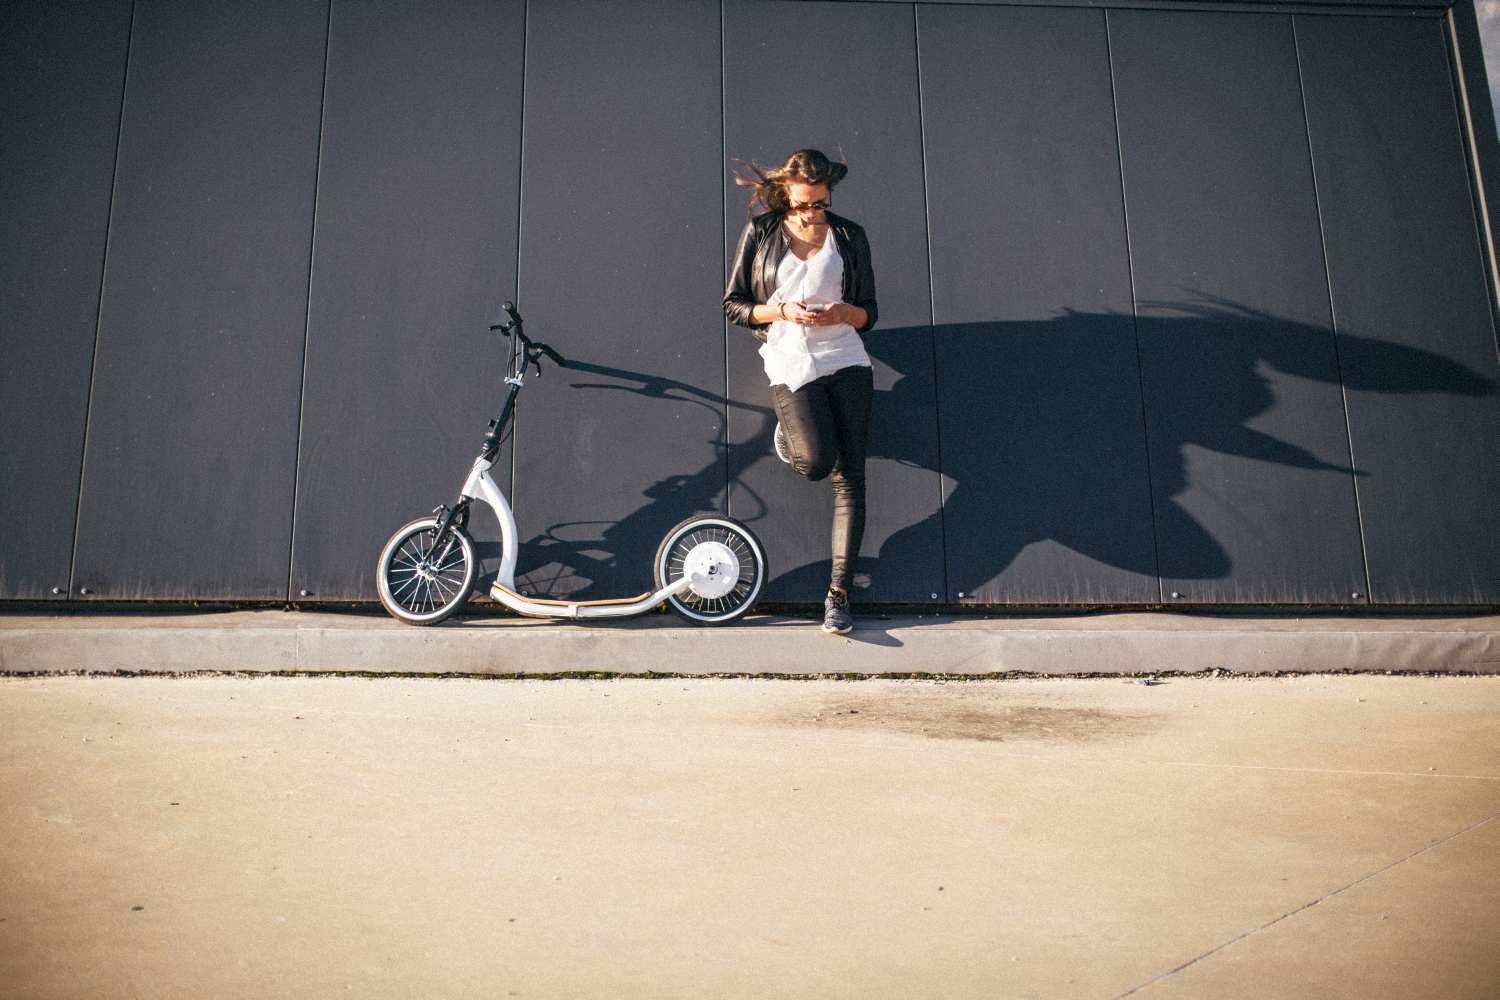 Smartped_Lifestyle (5)